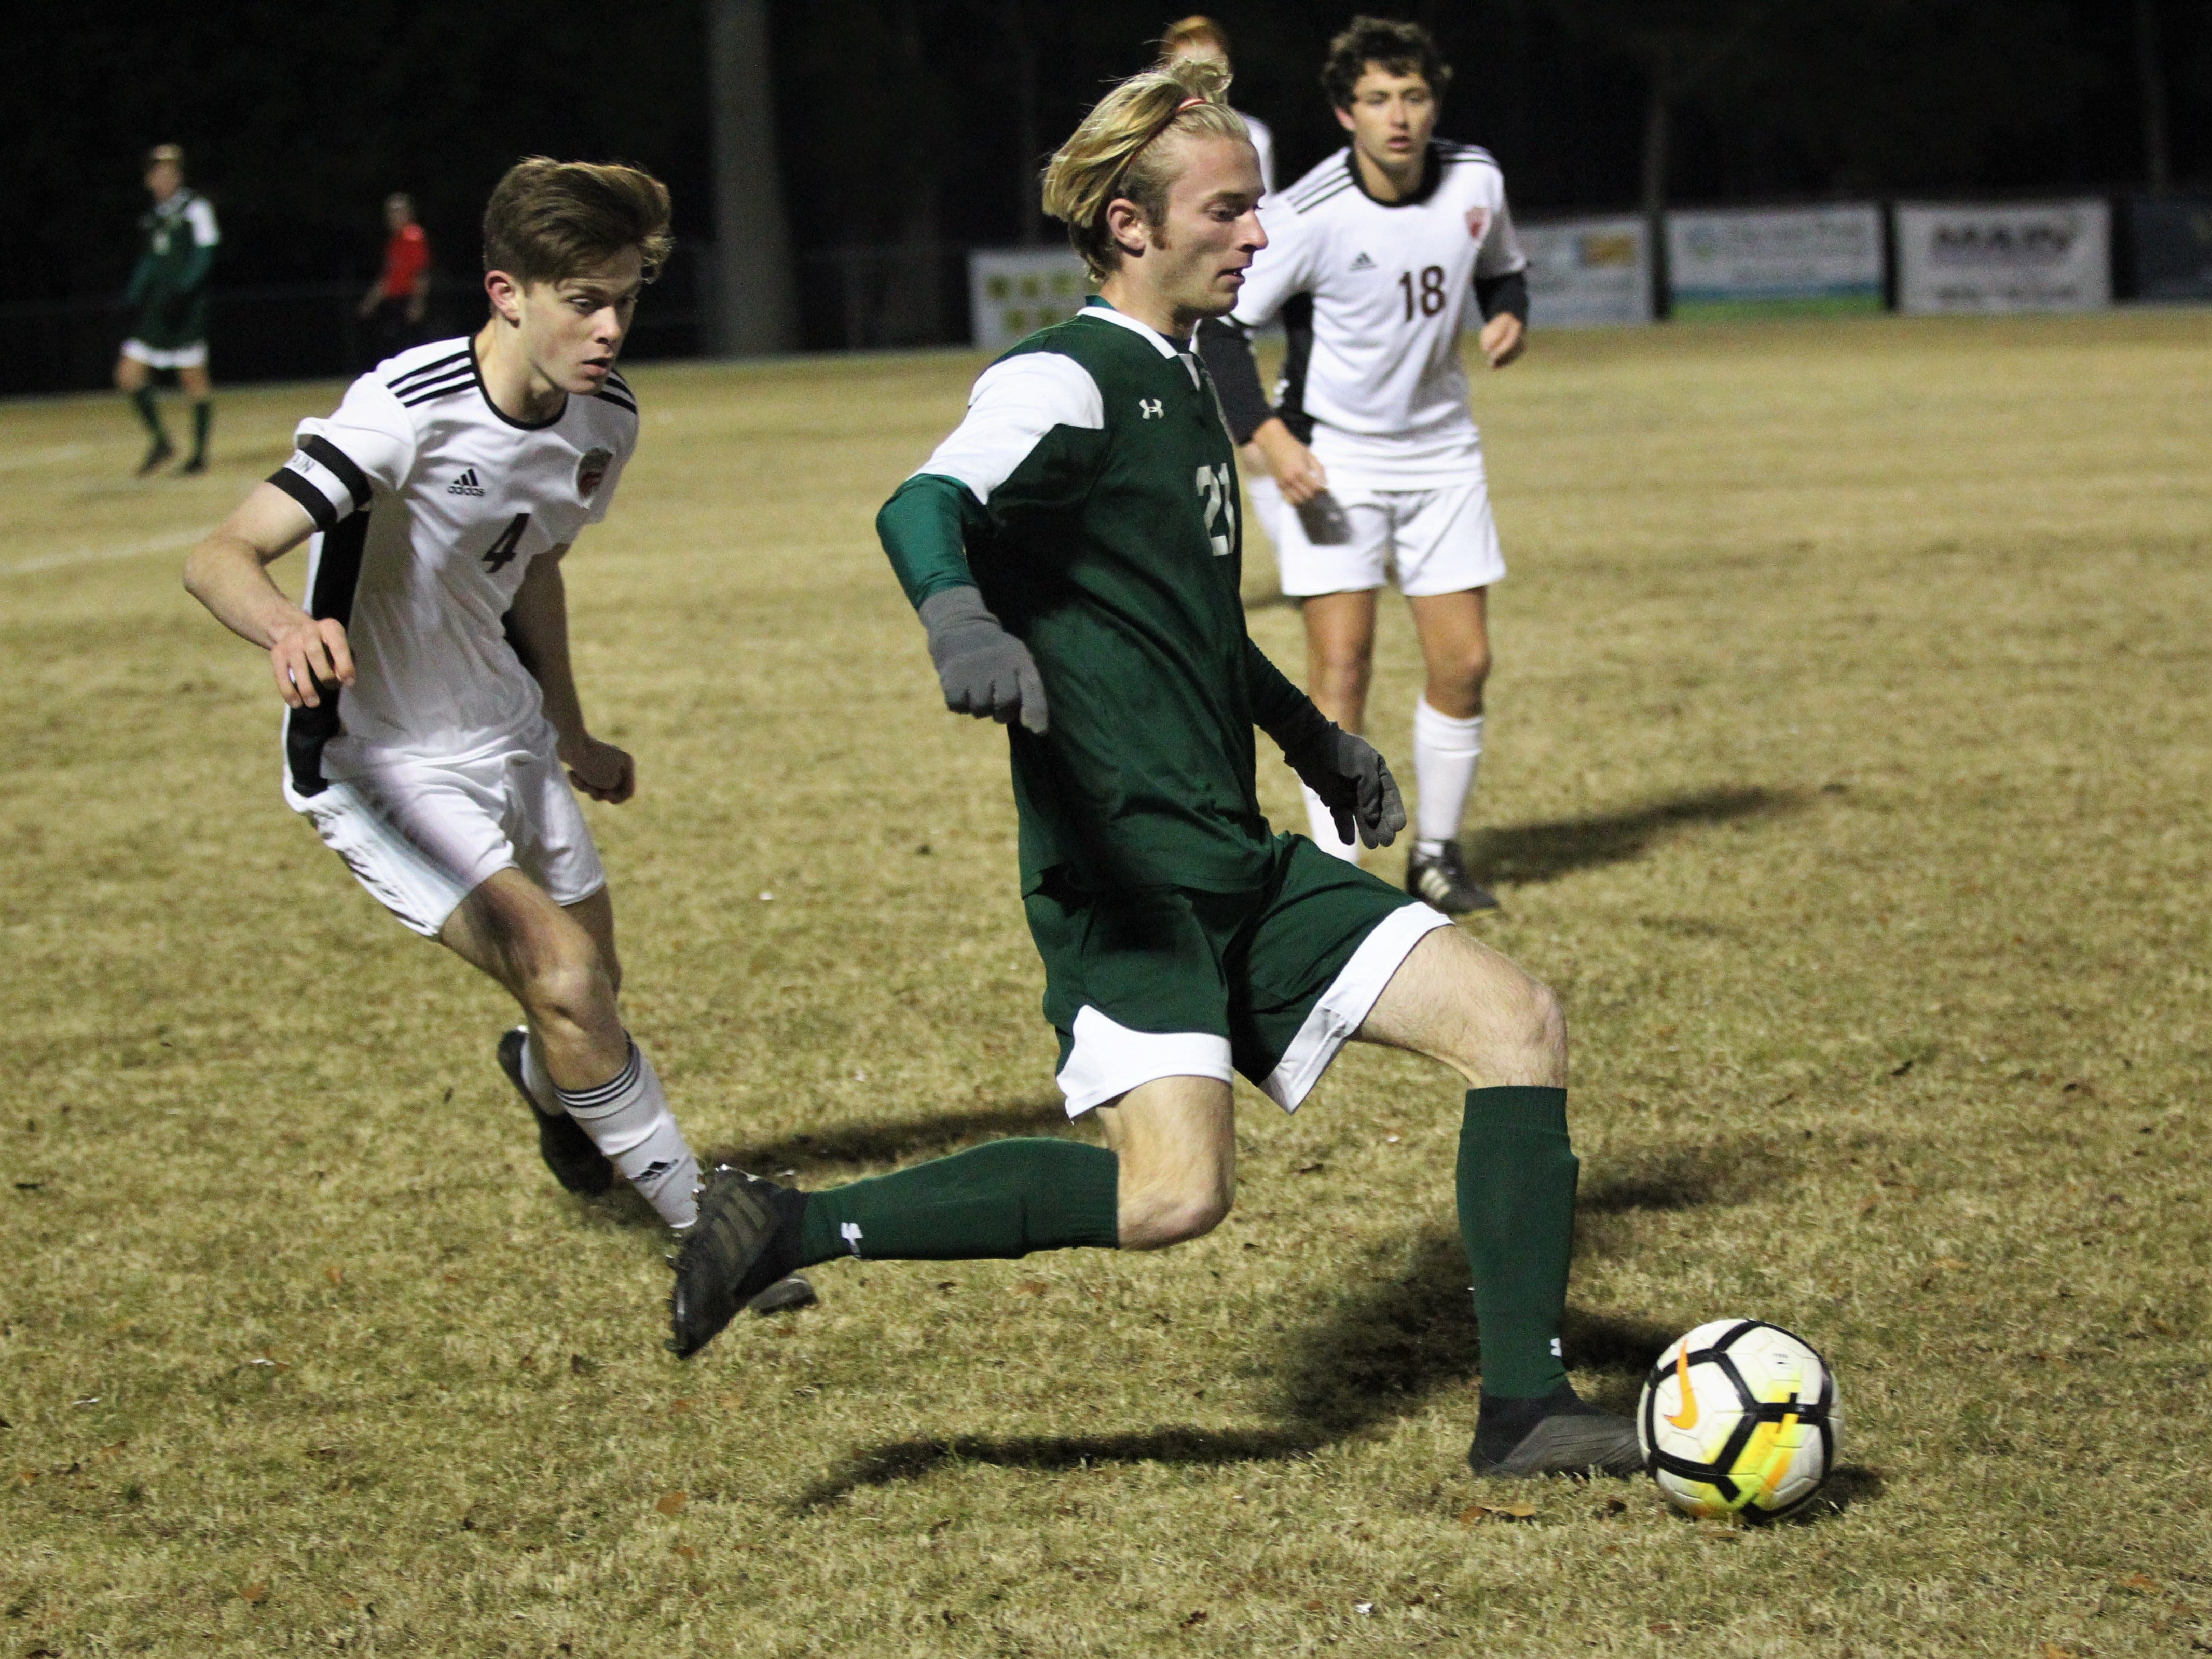 Lincoln's Alex Silvaroli makes a pass as Chiles' boys soccer team beat Lincoln 1-0 in a District 2-4A semifinal on Jan. 30, 2019.